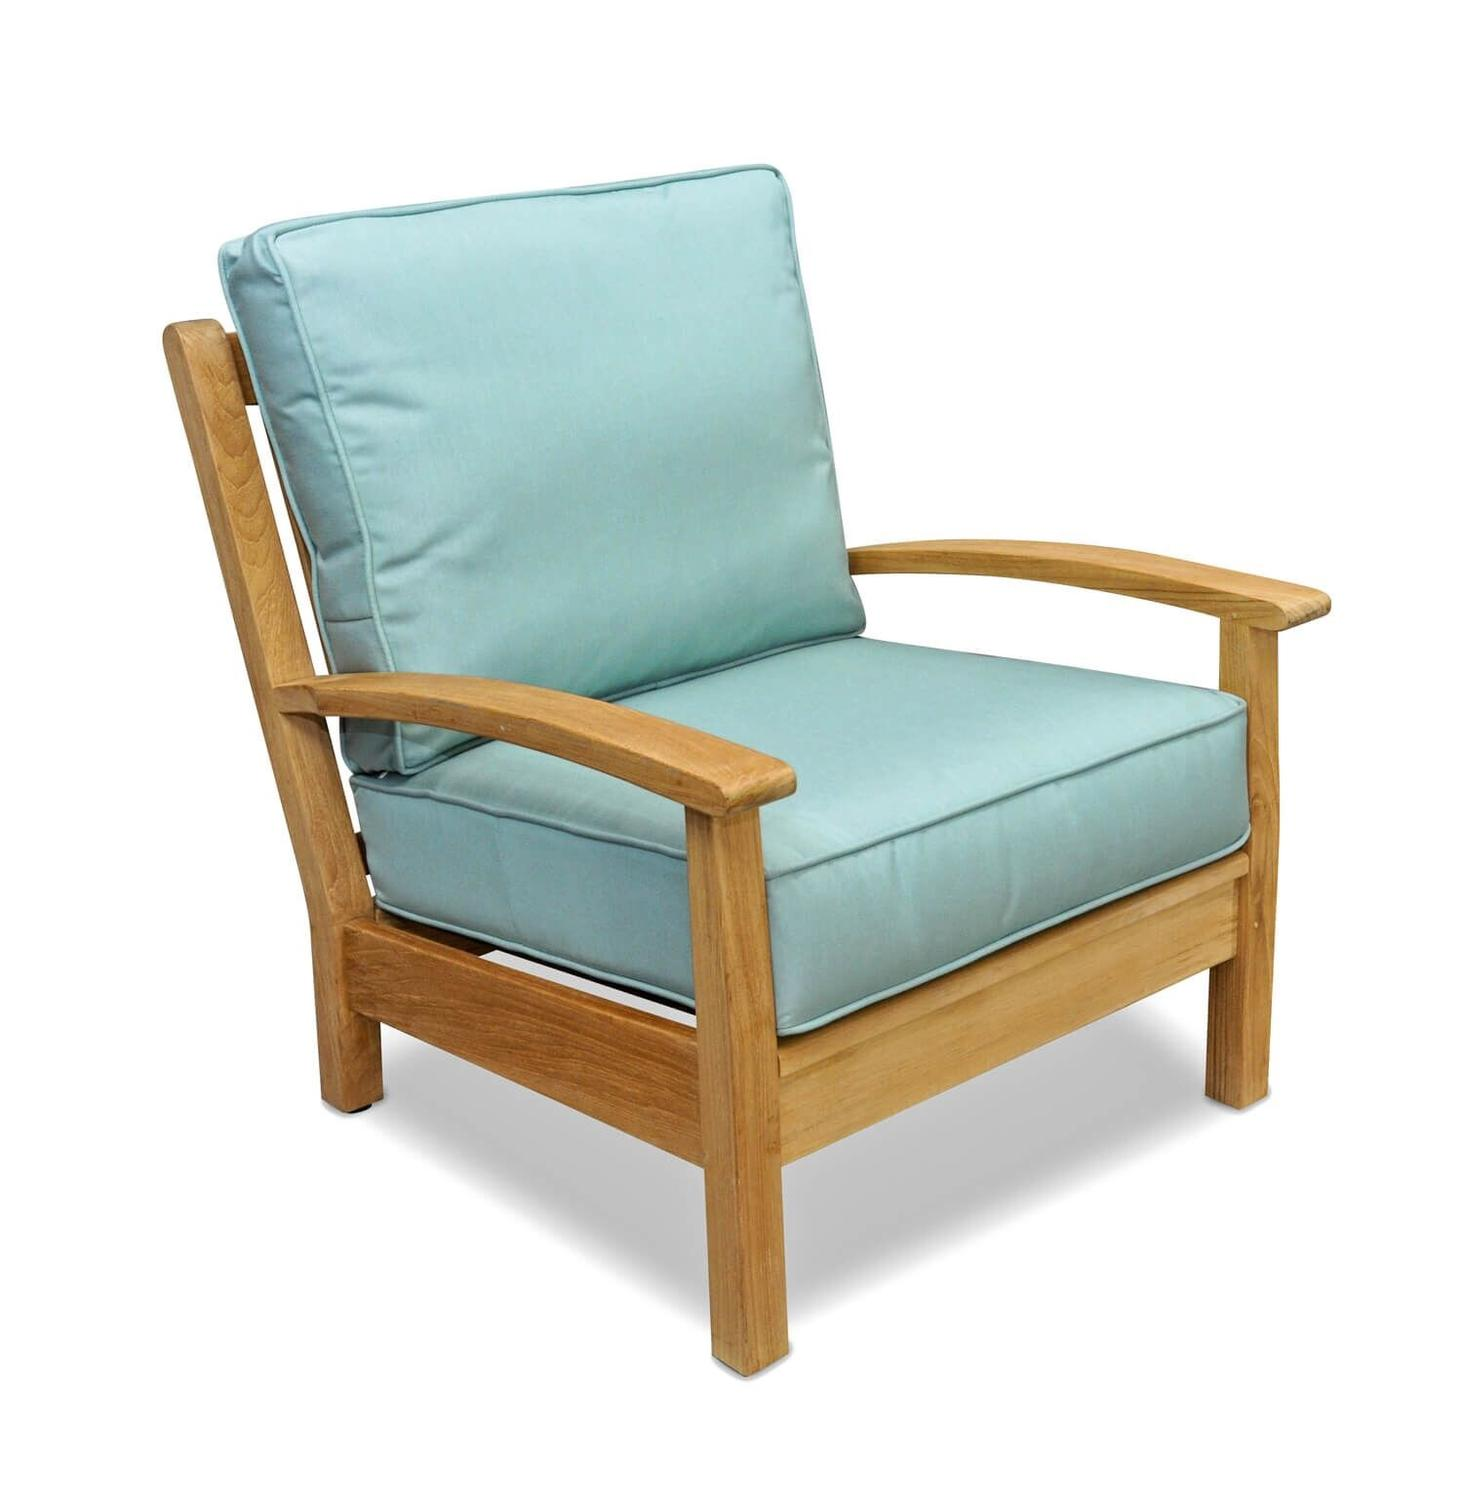 "34"" Natural Teak Deep Seating Outdoor Patio Lounge Chair with Spa Green Cushions"